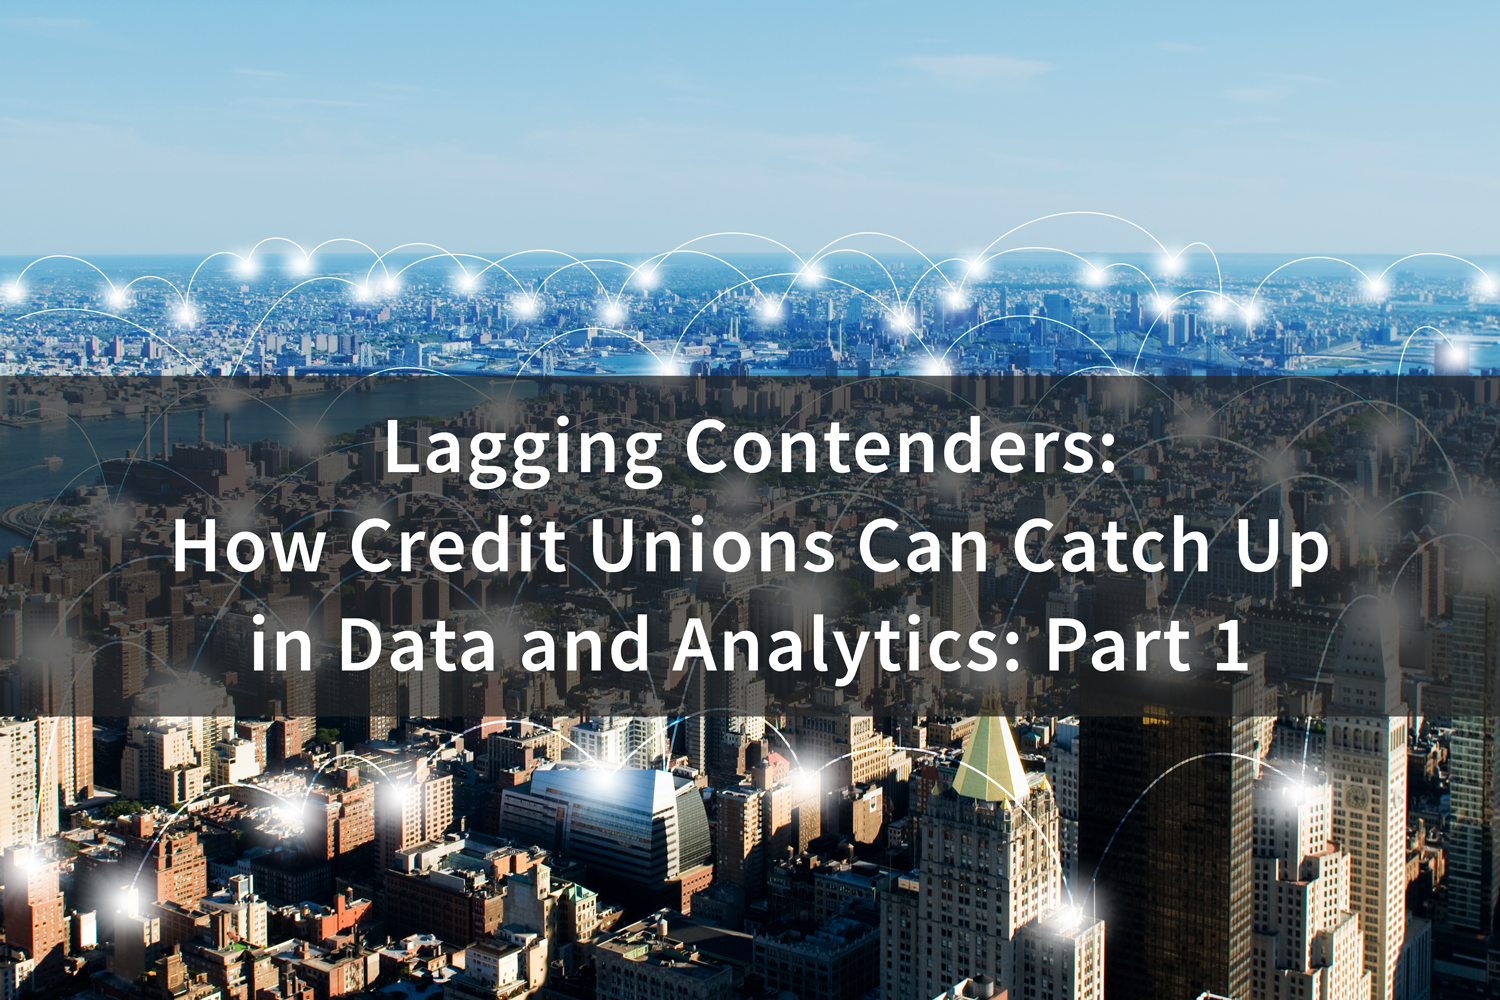 Lagging-Contenders_How-Credit-Unions-Can-Catch-up-in-Data-Analytics,-Part-1.png